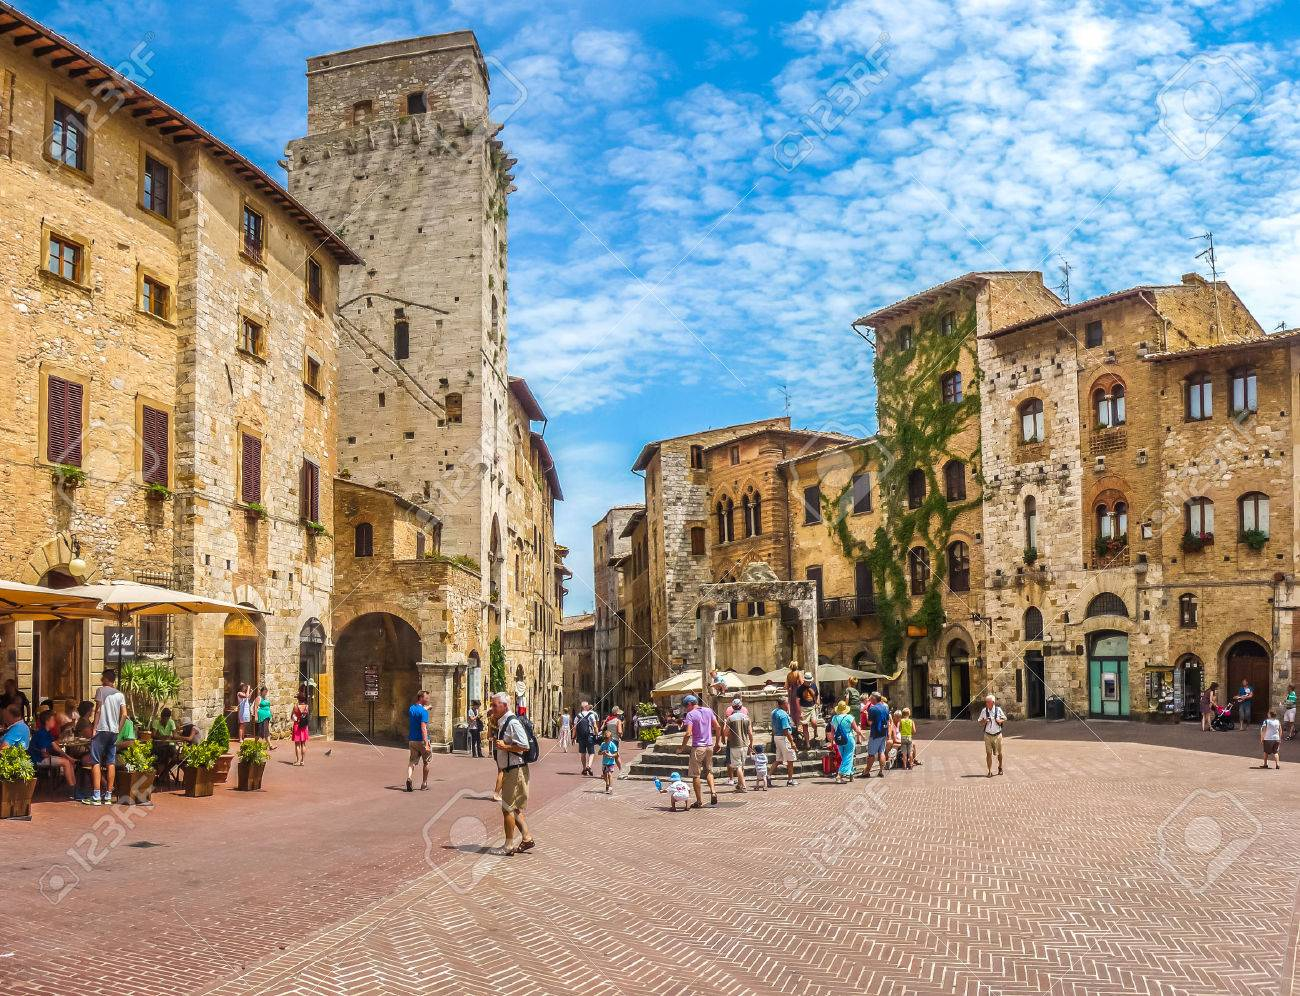 Panoramic view of famous Piazza della Cisterna in the historic town of  San Gimignano on a sunny day, Tuscany, Italy Banque d'images - 50795110